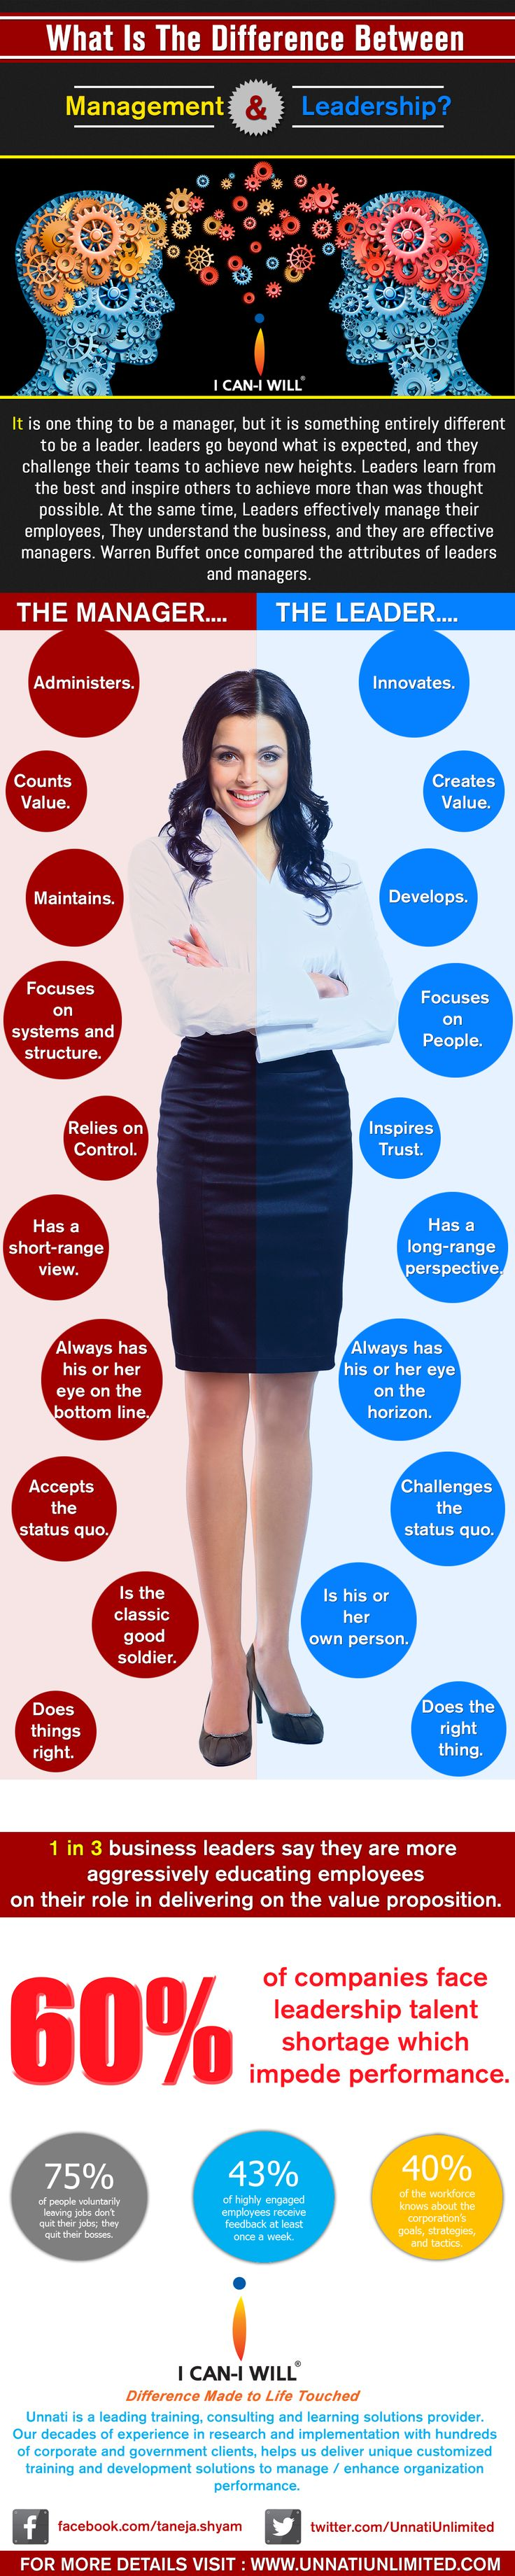 Do You Know the Difference Between Management and Leadership? #infographics #pod #career — Lightscap3s.com